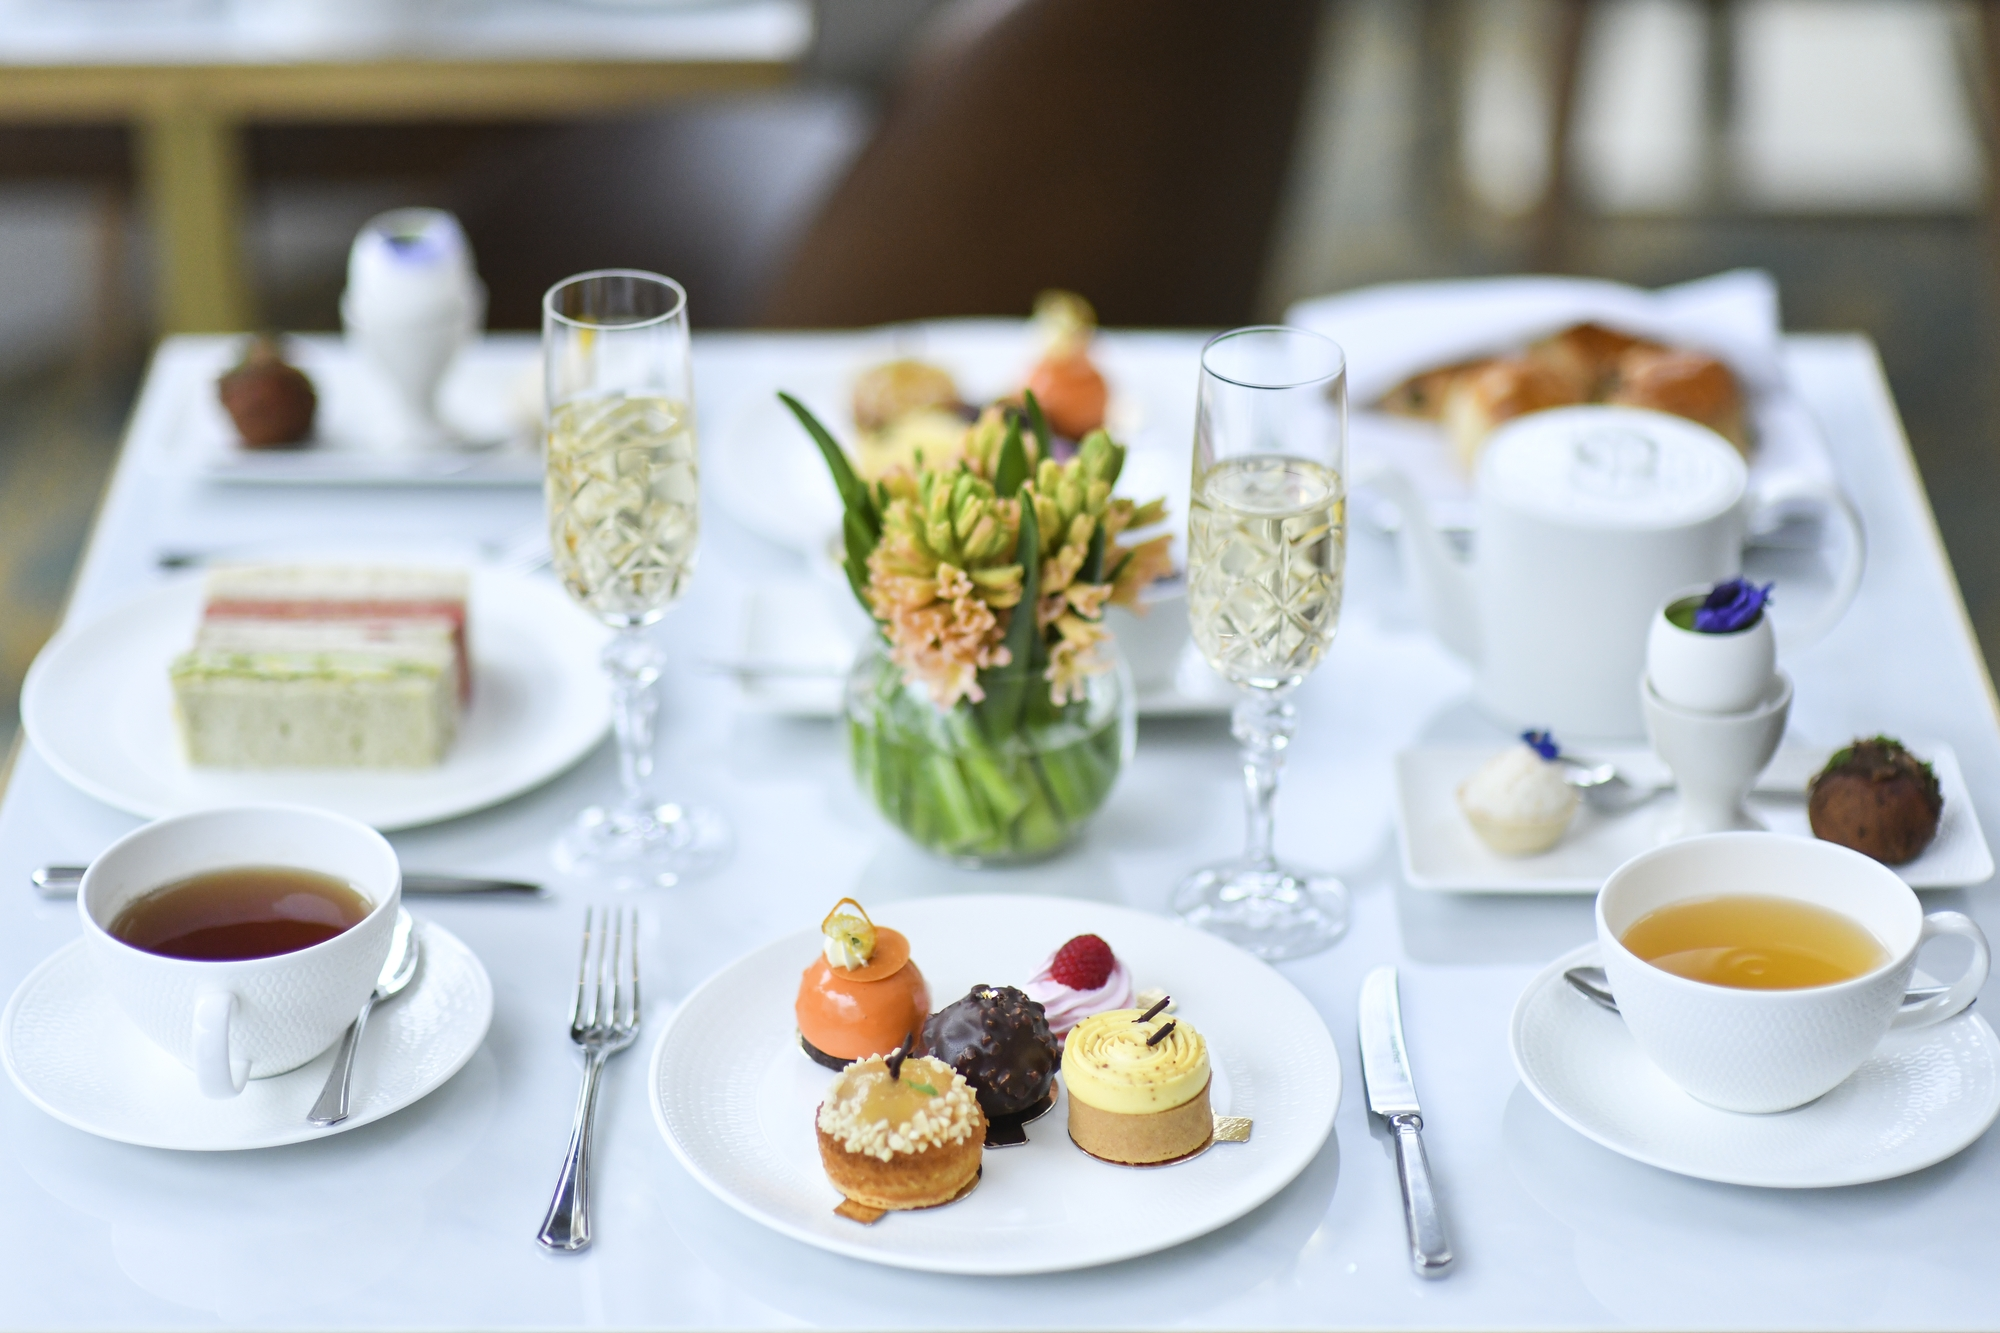 Image of Afternoon Tea at Royal Lancaster London